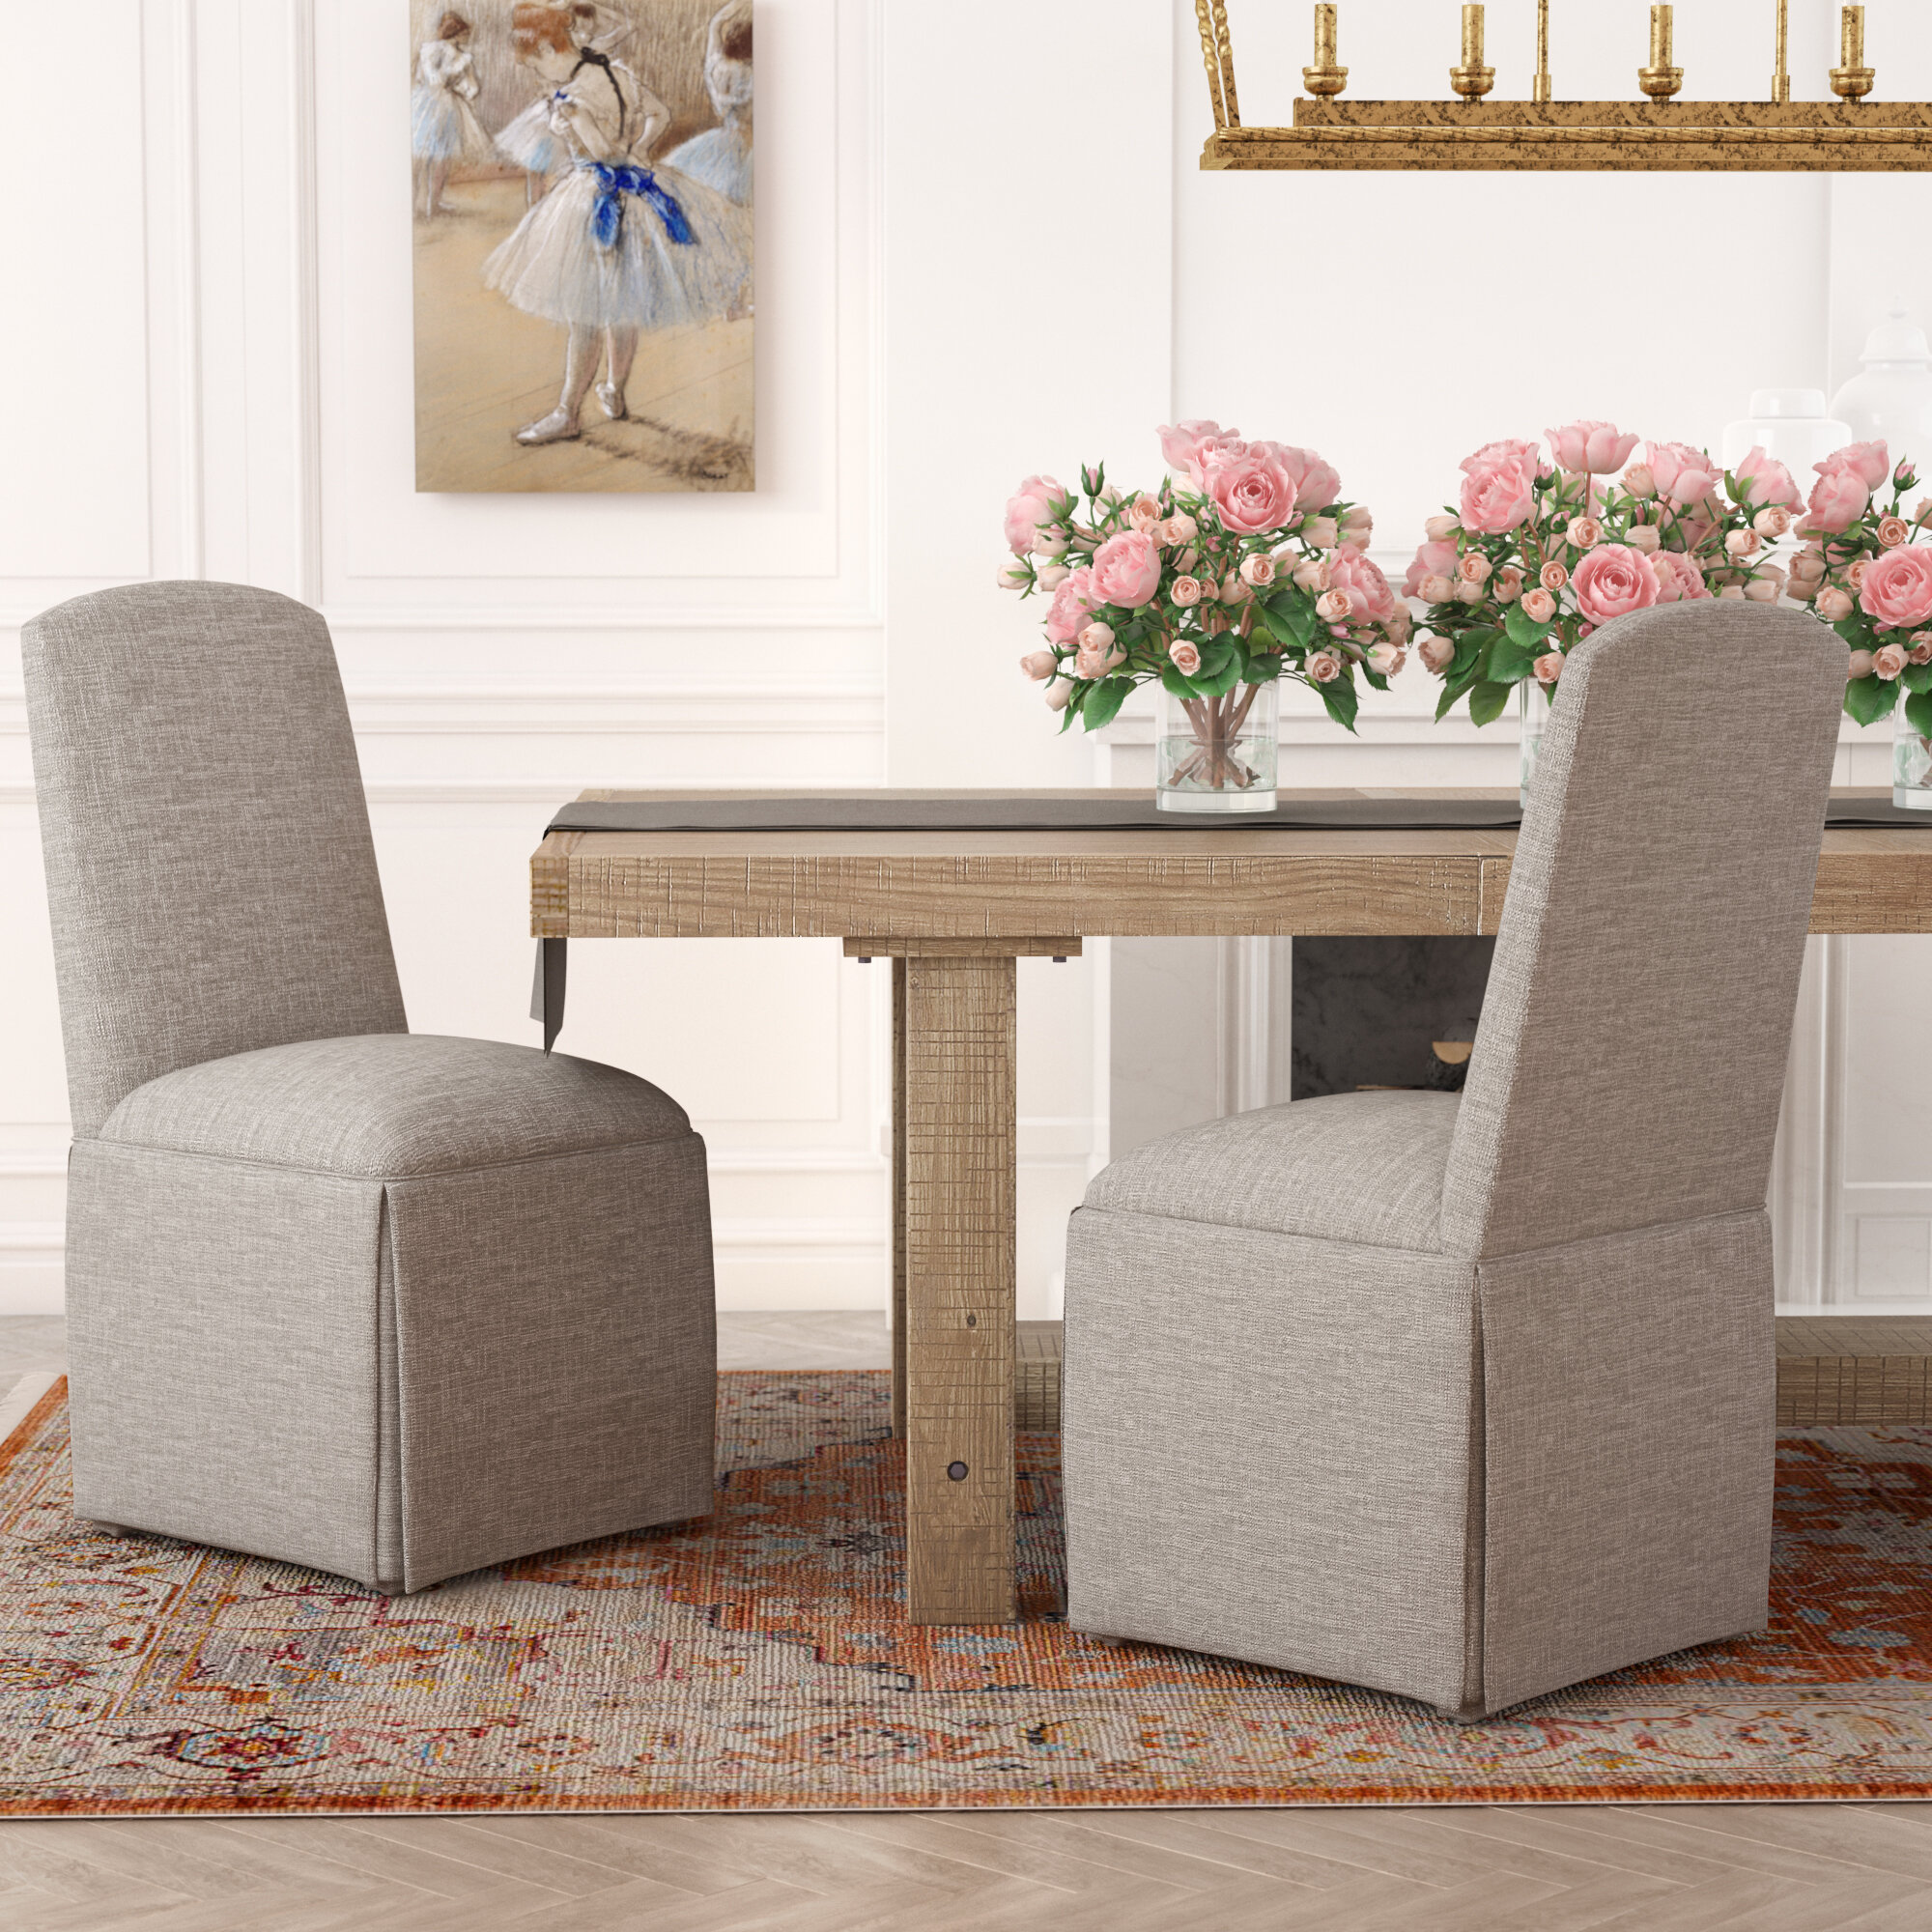 Darby Home Co Lamoille Traditional Skirted Upholstered Dining Chair U0026  Reviews | Wayfair